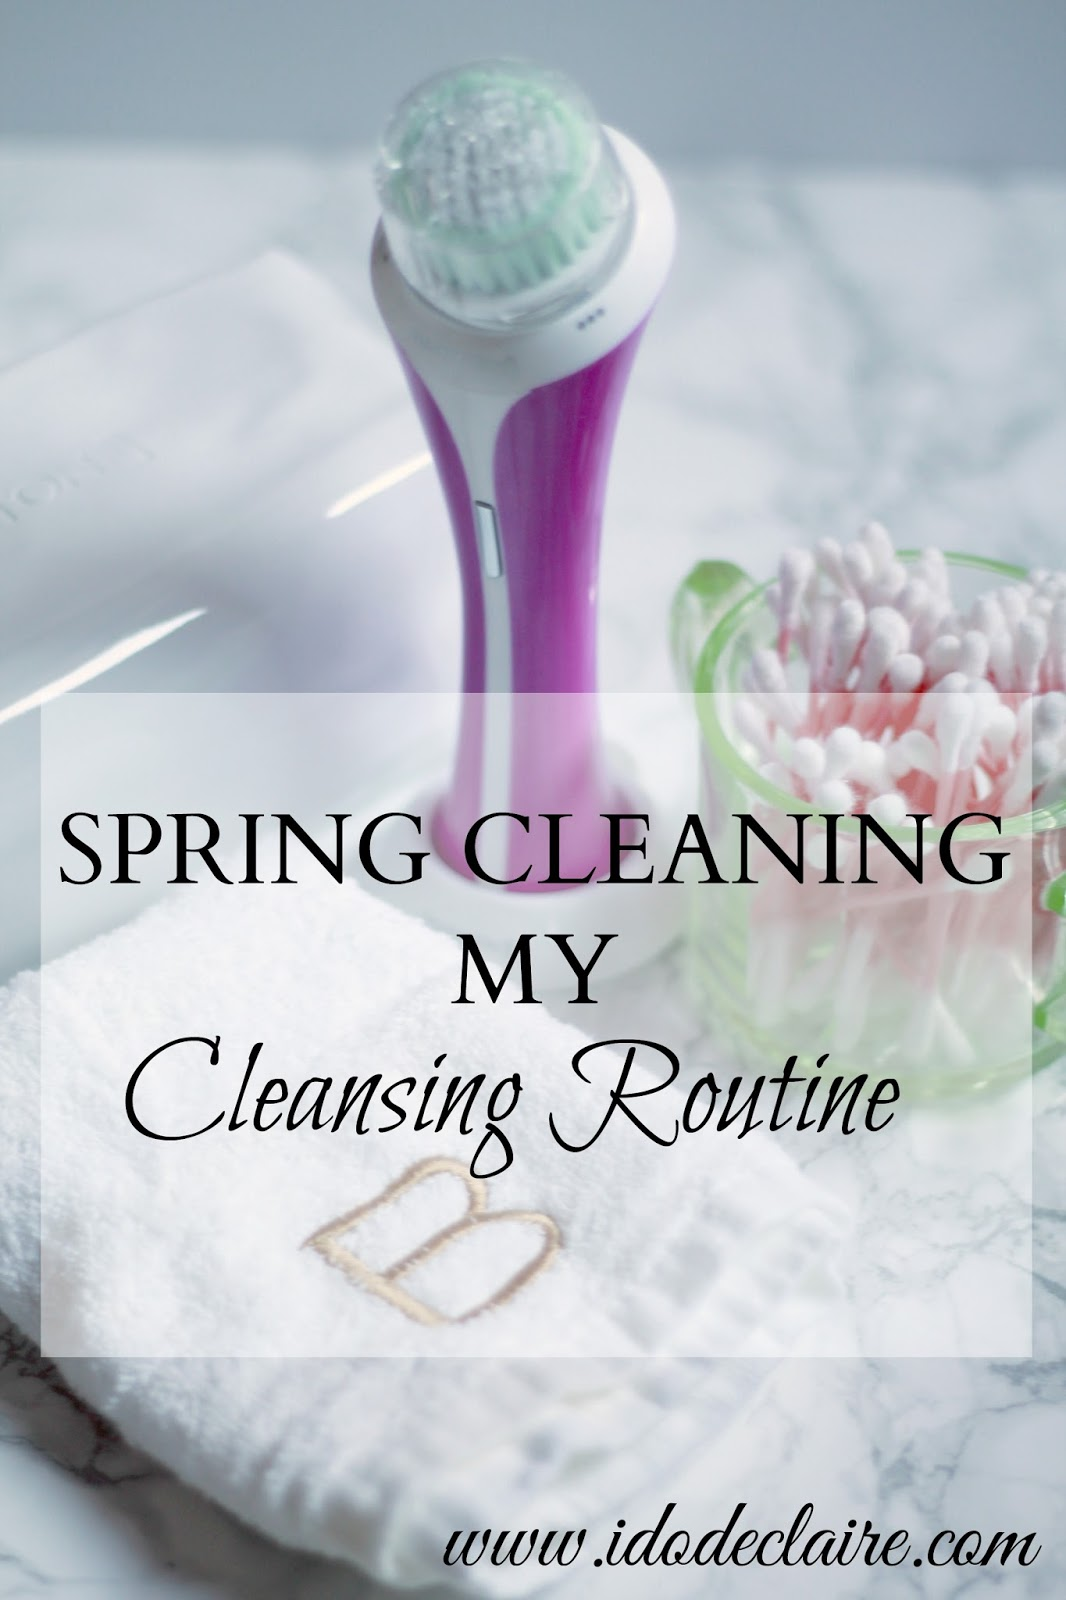 remington facial cleansing brush, spring skincare routine